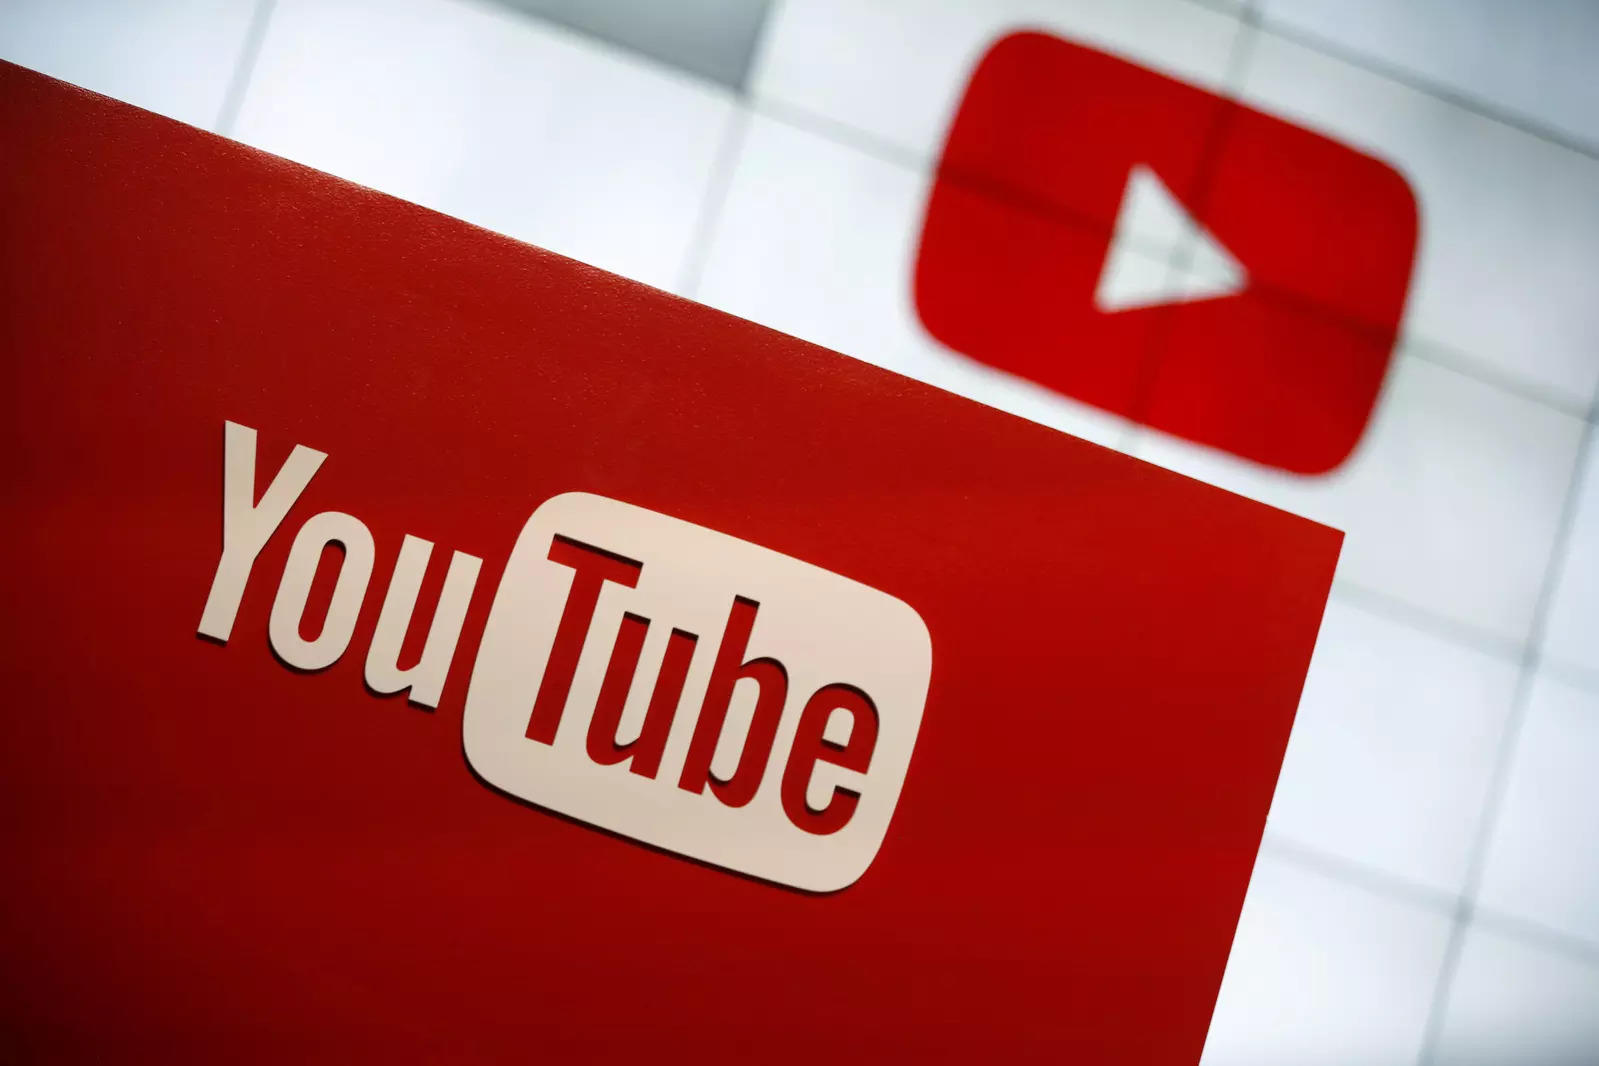 YouTube to launch Learning Marathon to upskill learners